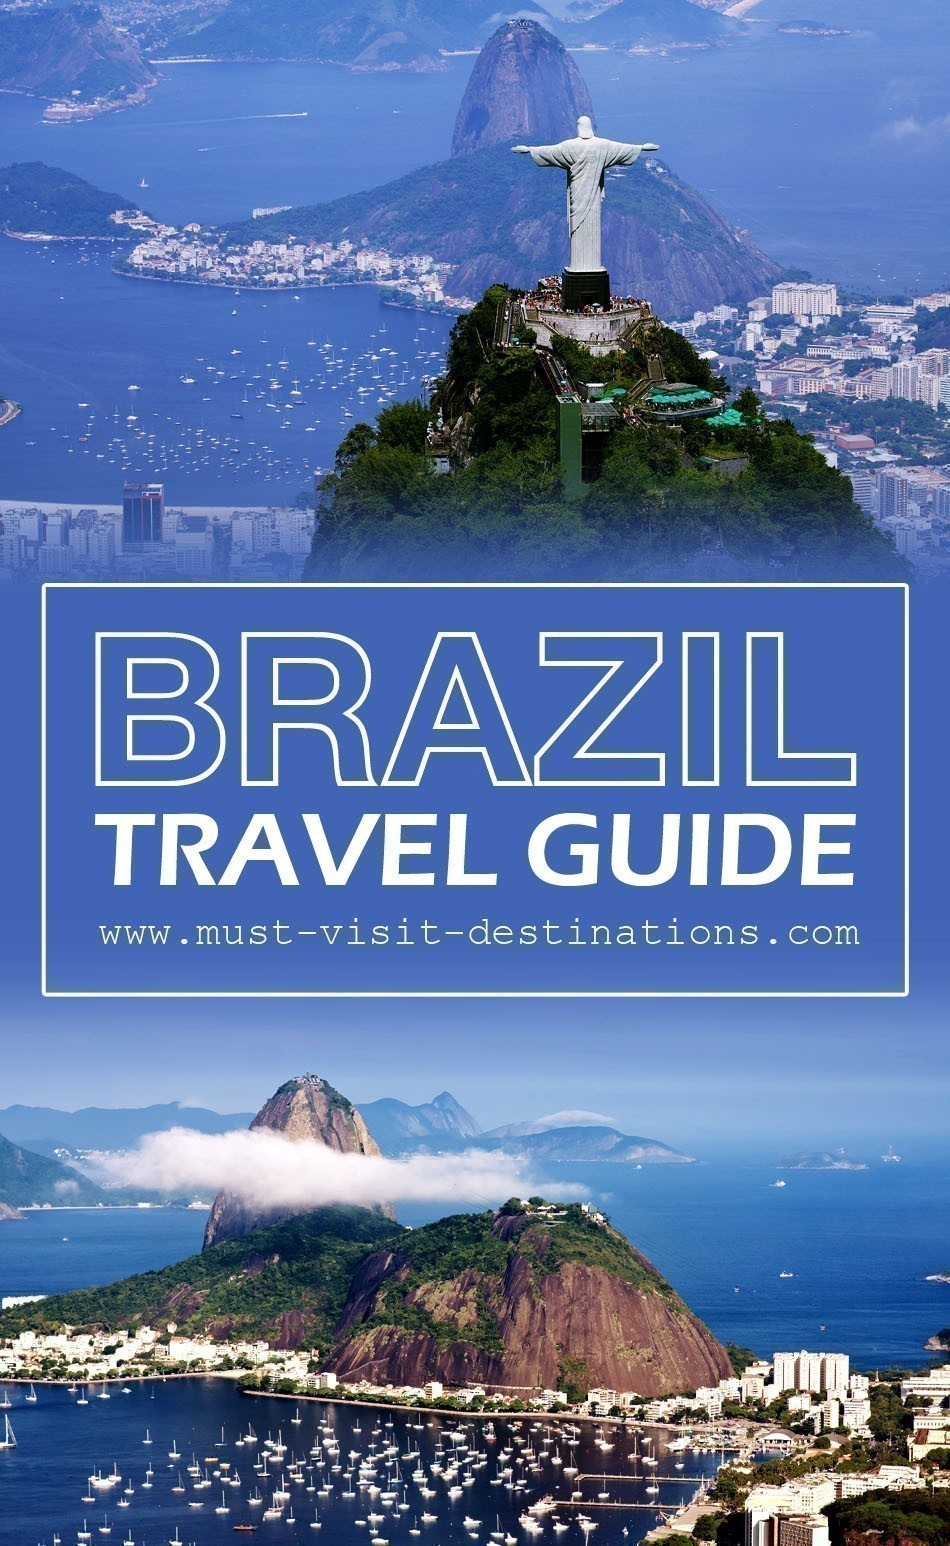 Brazil Travel Guide, Useful & Free #Brazil #Travel #Guide